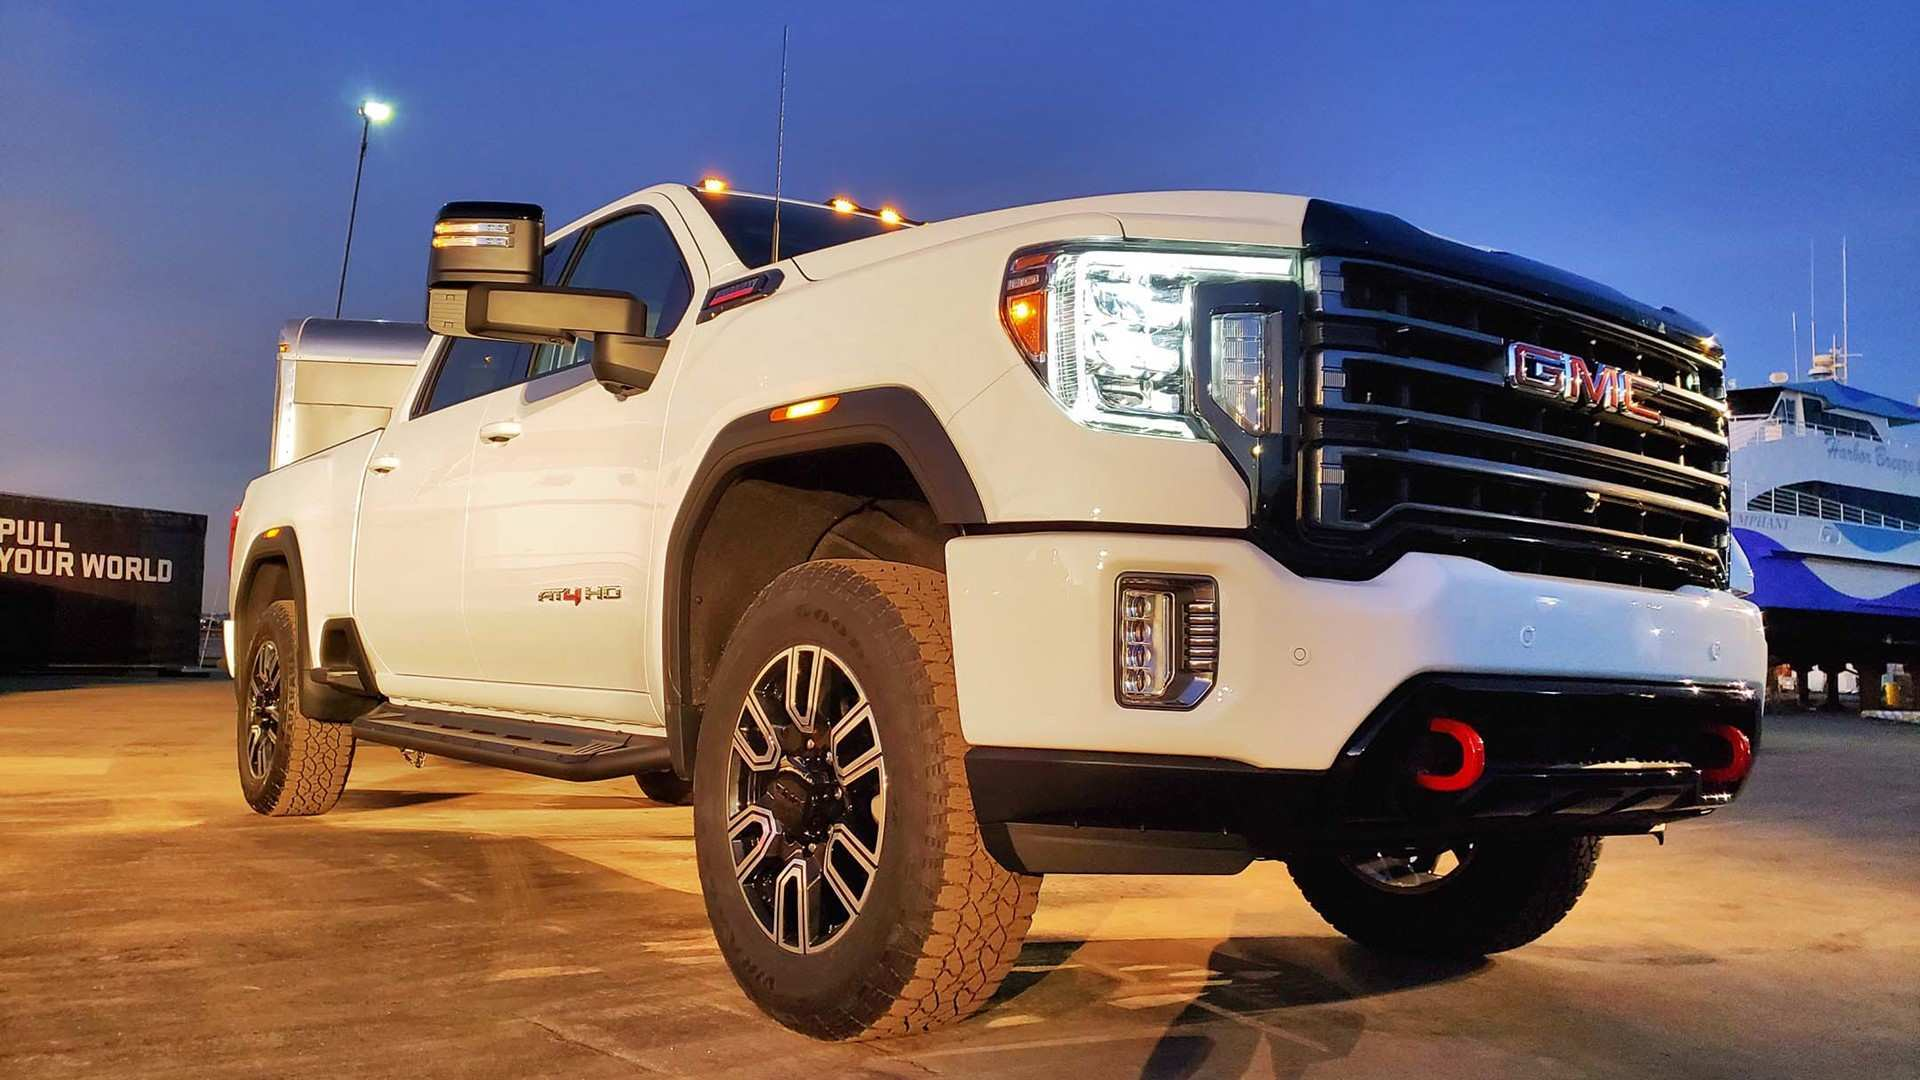 53 All New 2020 Gmc Sierra Denali 1500 Hd Release Date And Concept